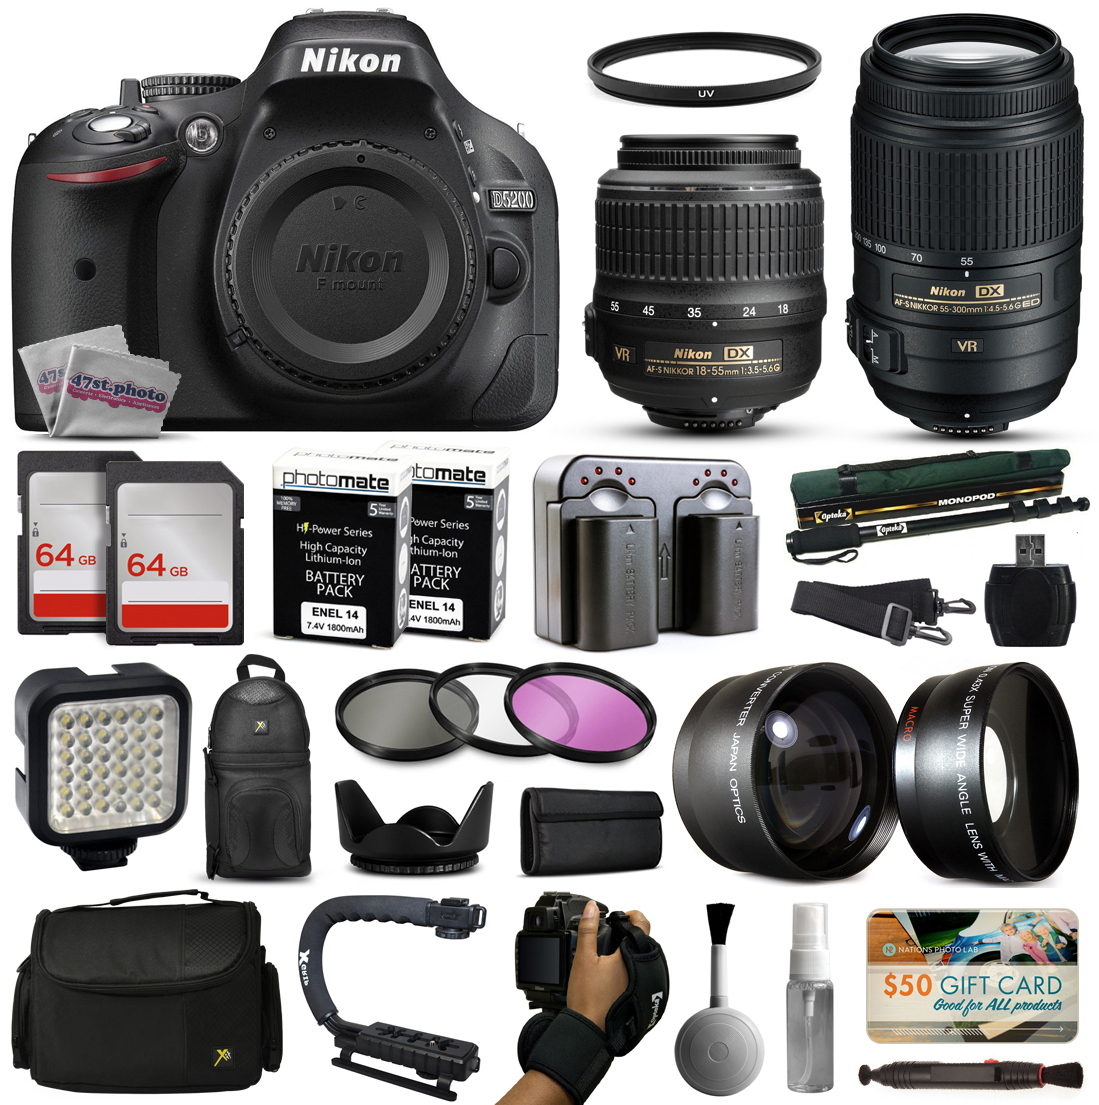 Nikon D5200 DSLR Digital Camera with 18-55mm VR + 55-300mm VR Lens + 128GB Memory + 2 Batteries + Charger + LED Video Light + Backpack + Case + Filters + Auxiliary Lenses + $50 Gift Card + More!